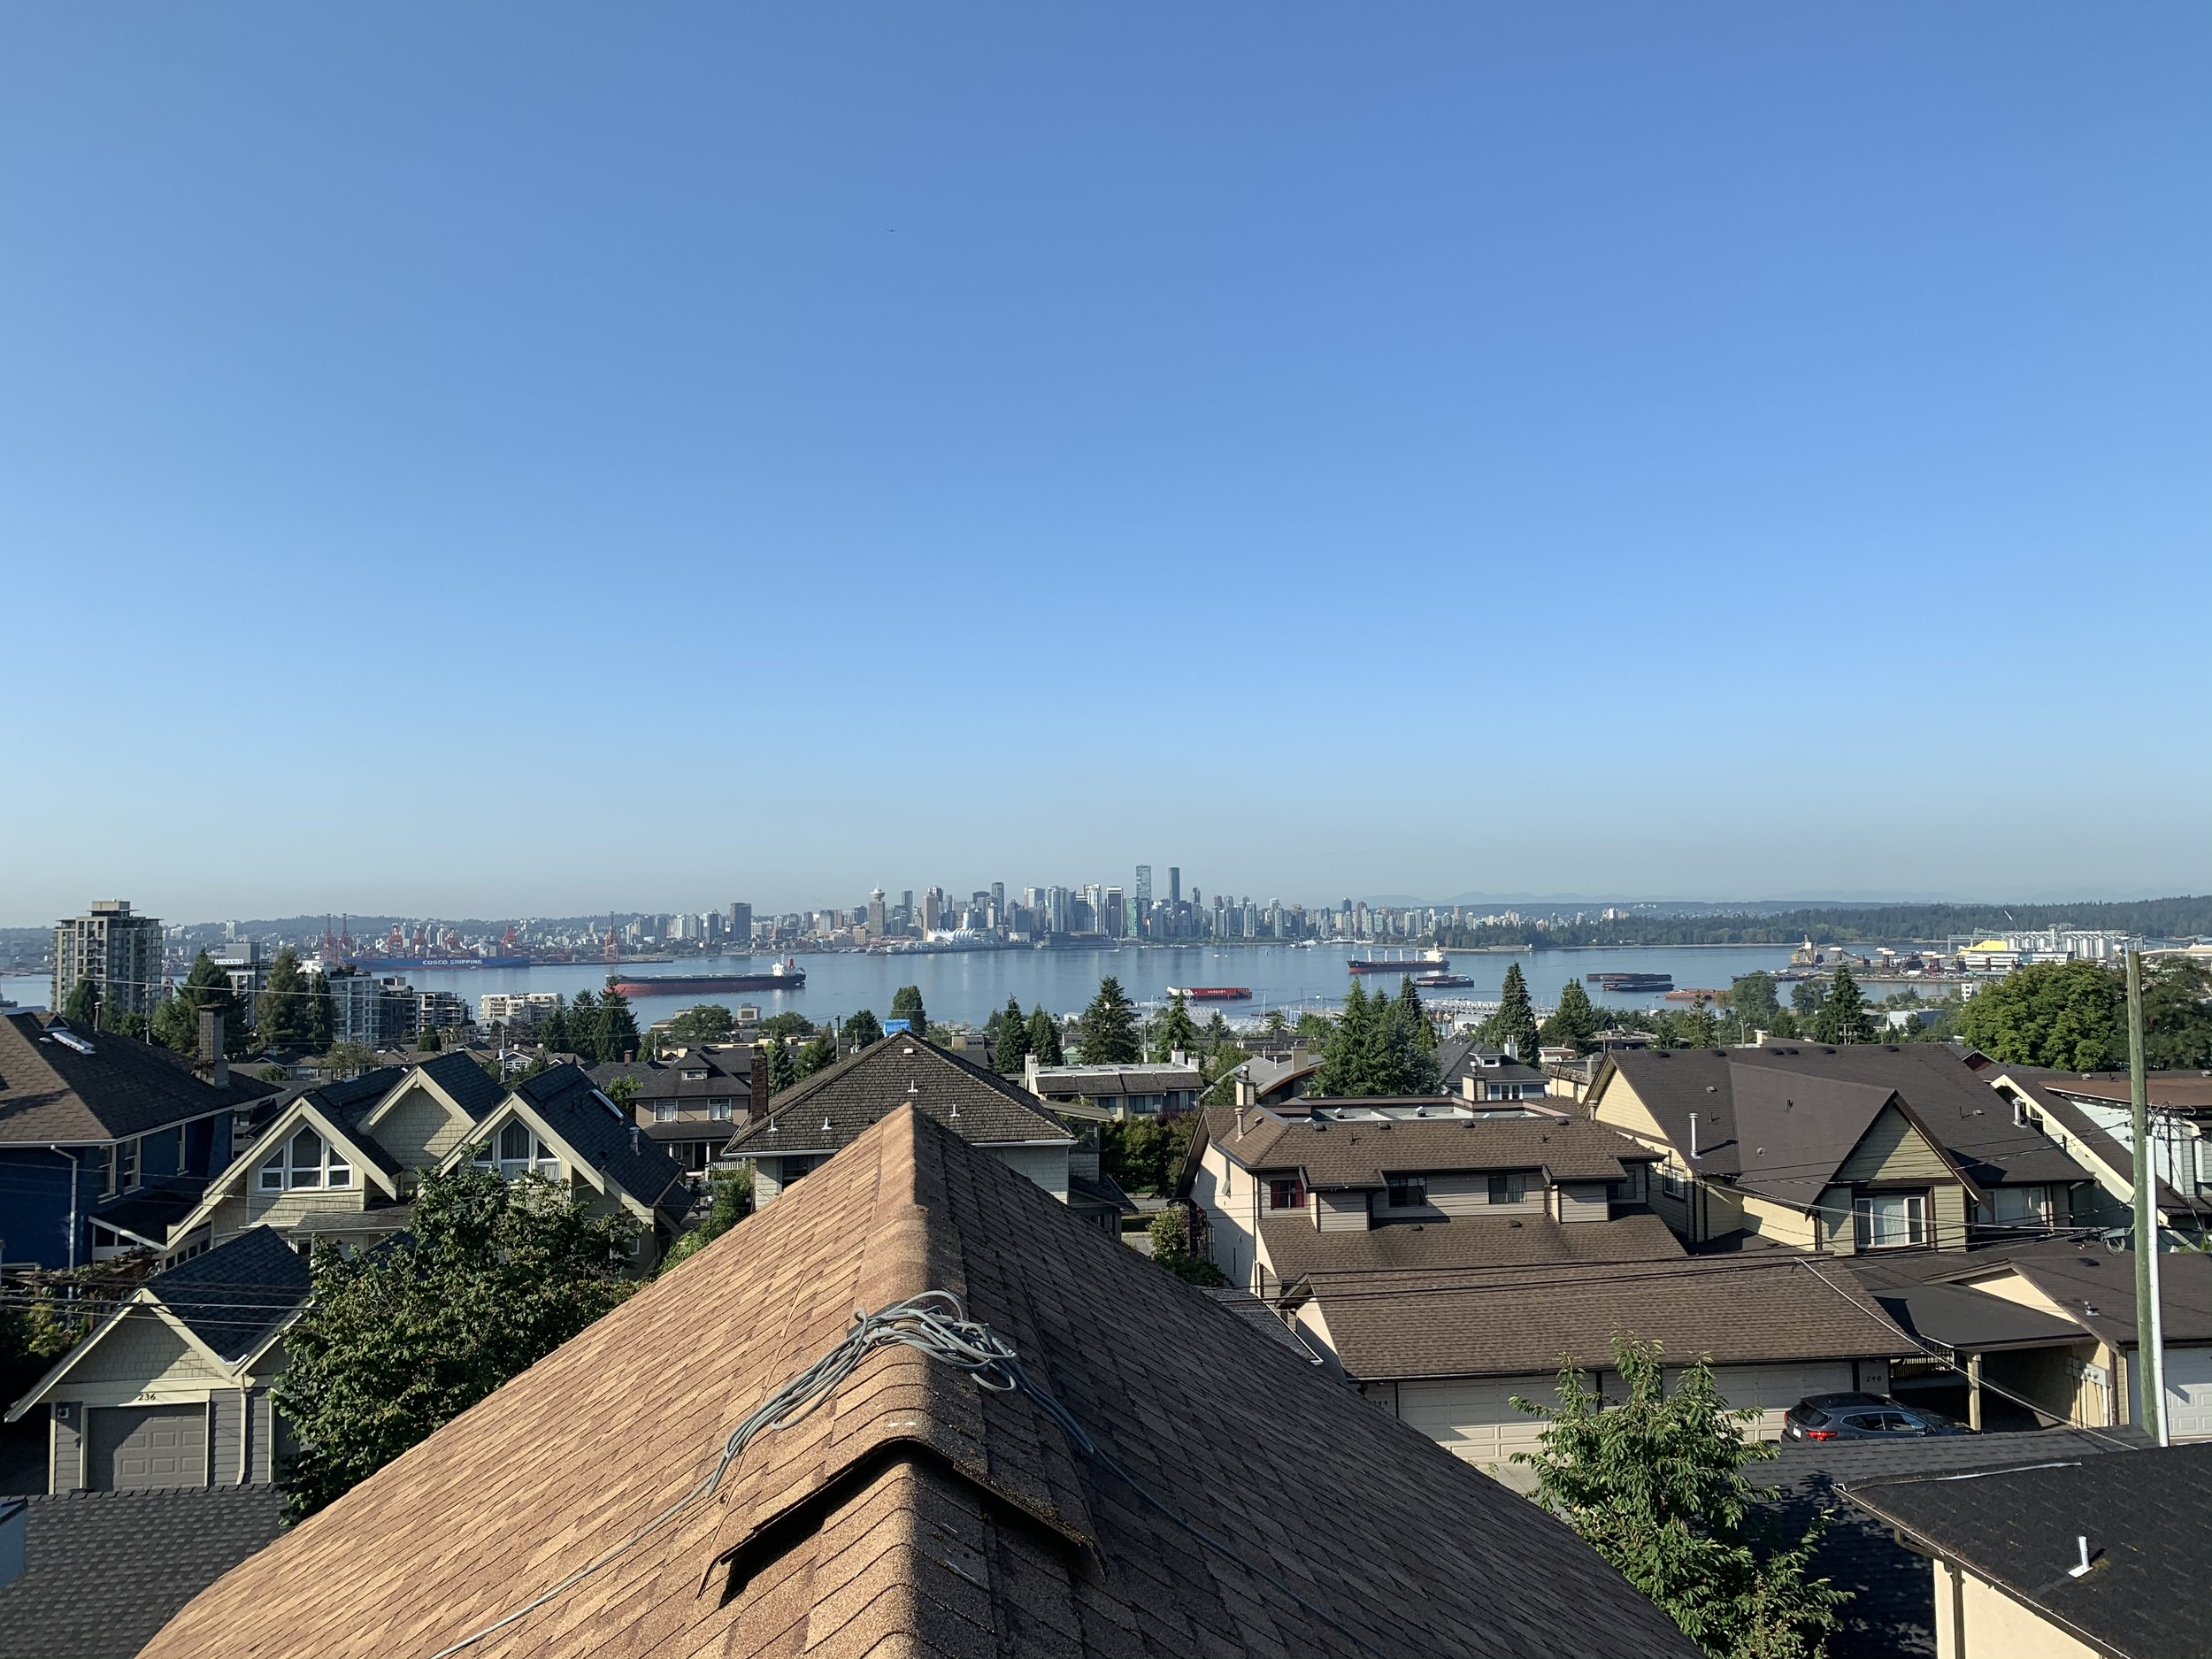 The wonderful rooftop views from the North Shore